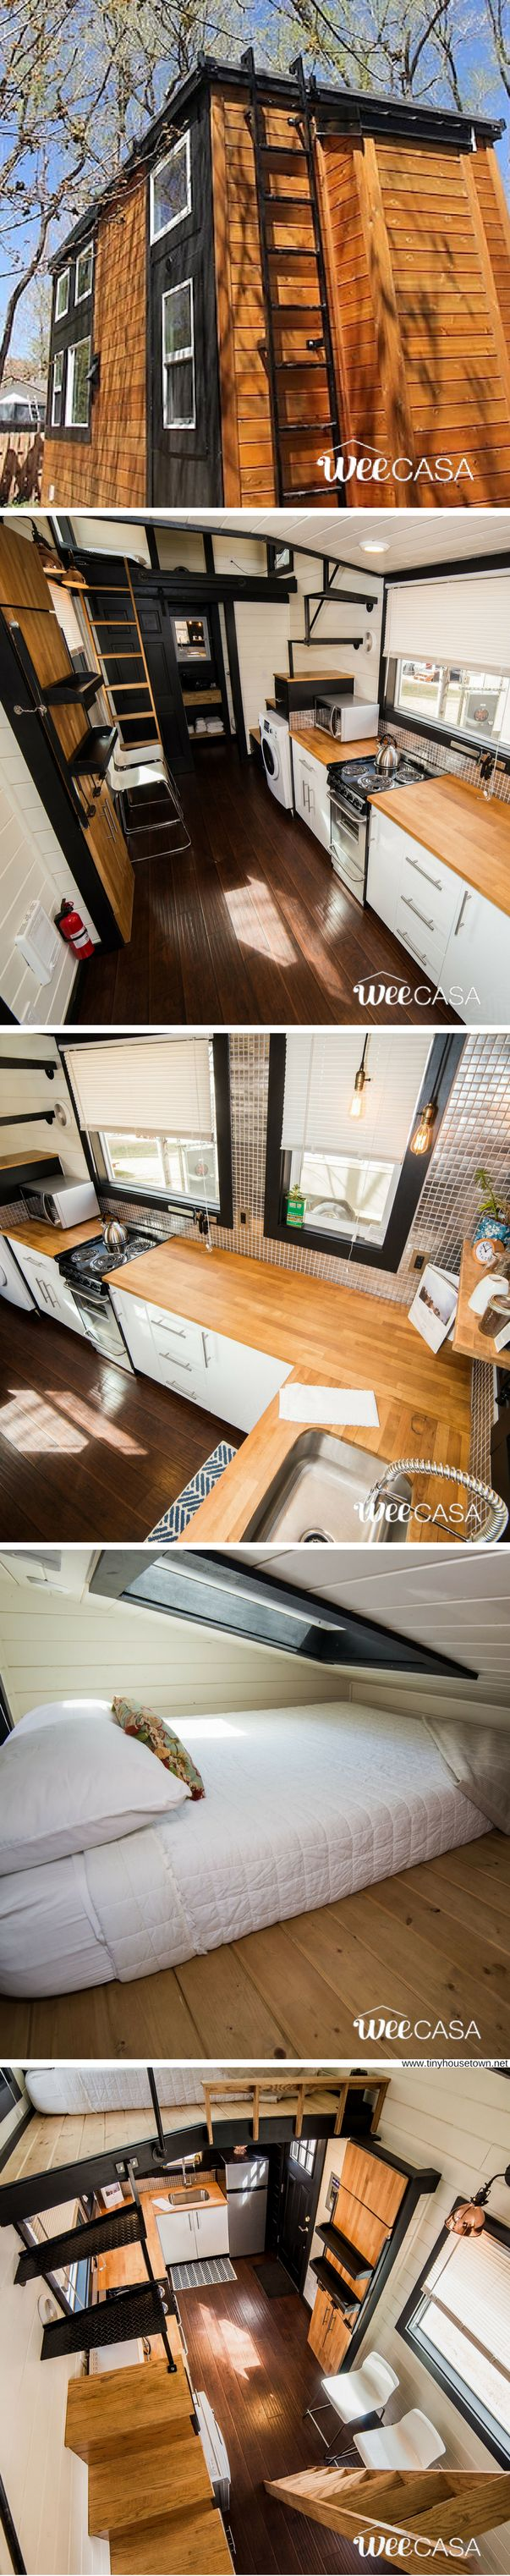 The Modern Tiny House (190 Sq Ft)